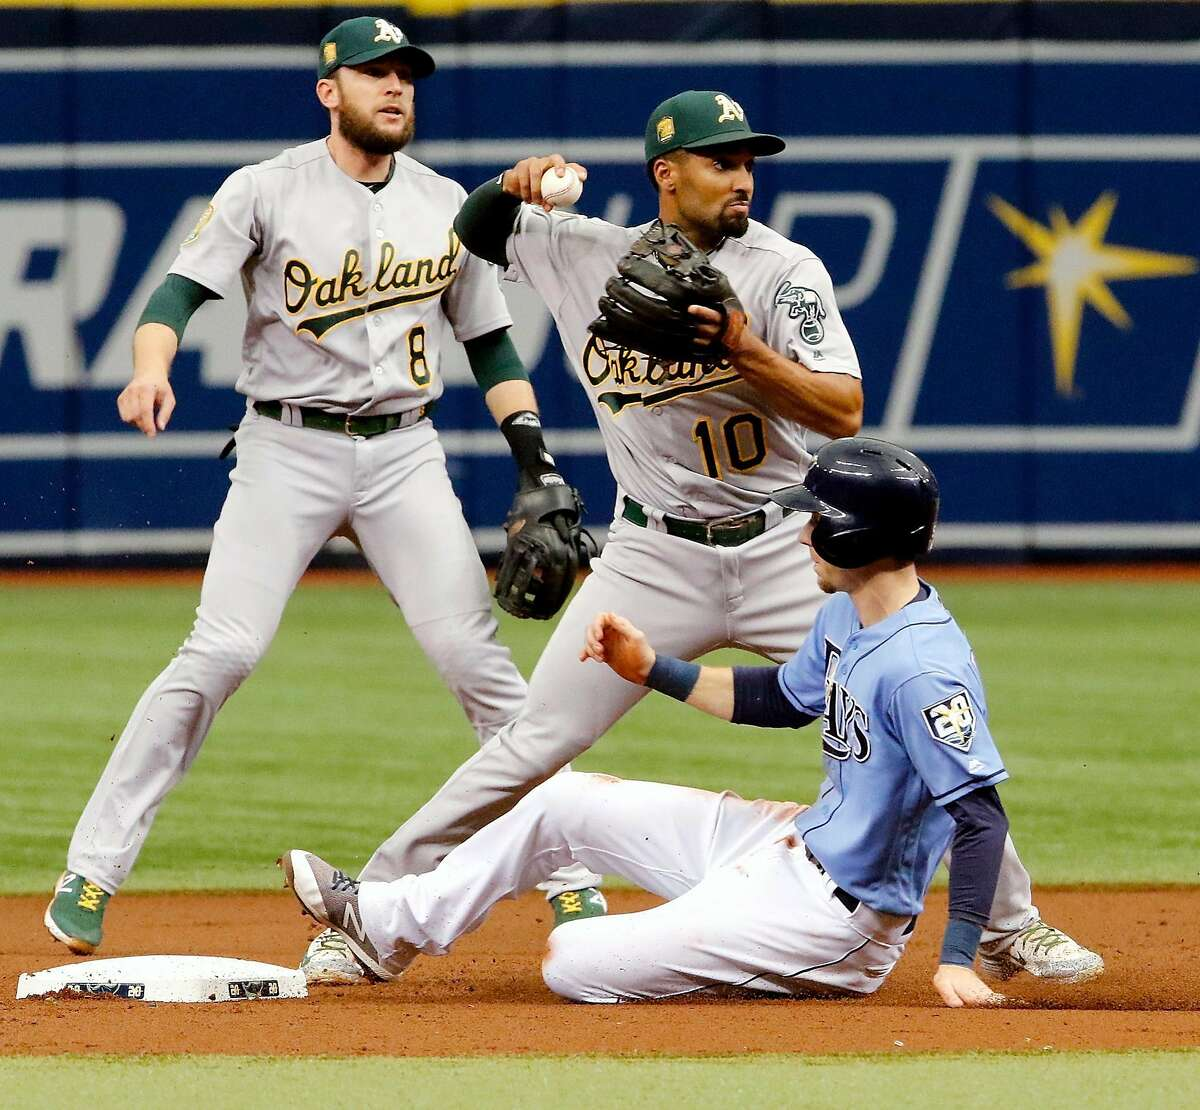 ST. PETERSBURG, FL SEPTEMBER 16: Marcus Semien #10 of the Oakland Athletics throws the ball to first base after tagging second for the force out on Matt Duffy #5 of the Tampa Bay Rays as teammate Jed Lowrie #8 watches during the first inning of the game against the Tampa Bay Rays at Tropicana Field on September 16, 2018 in St. Petersburg, Florida. (Photo by Joseph Garnett Jr./Getty Images)